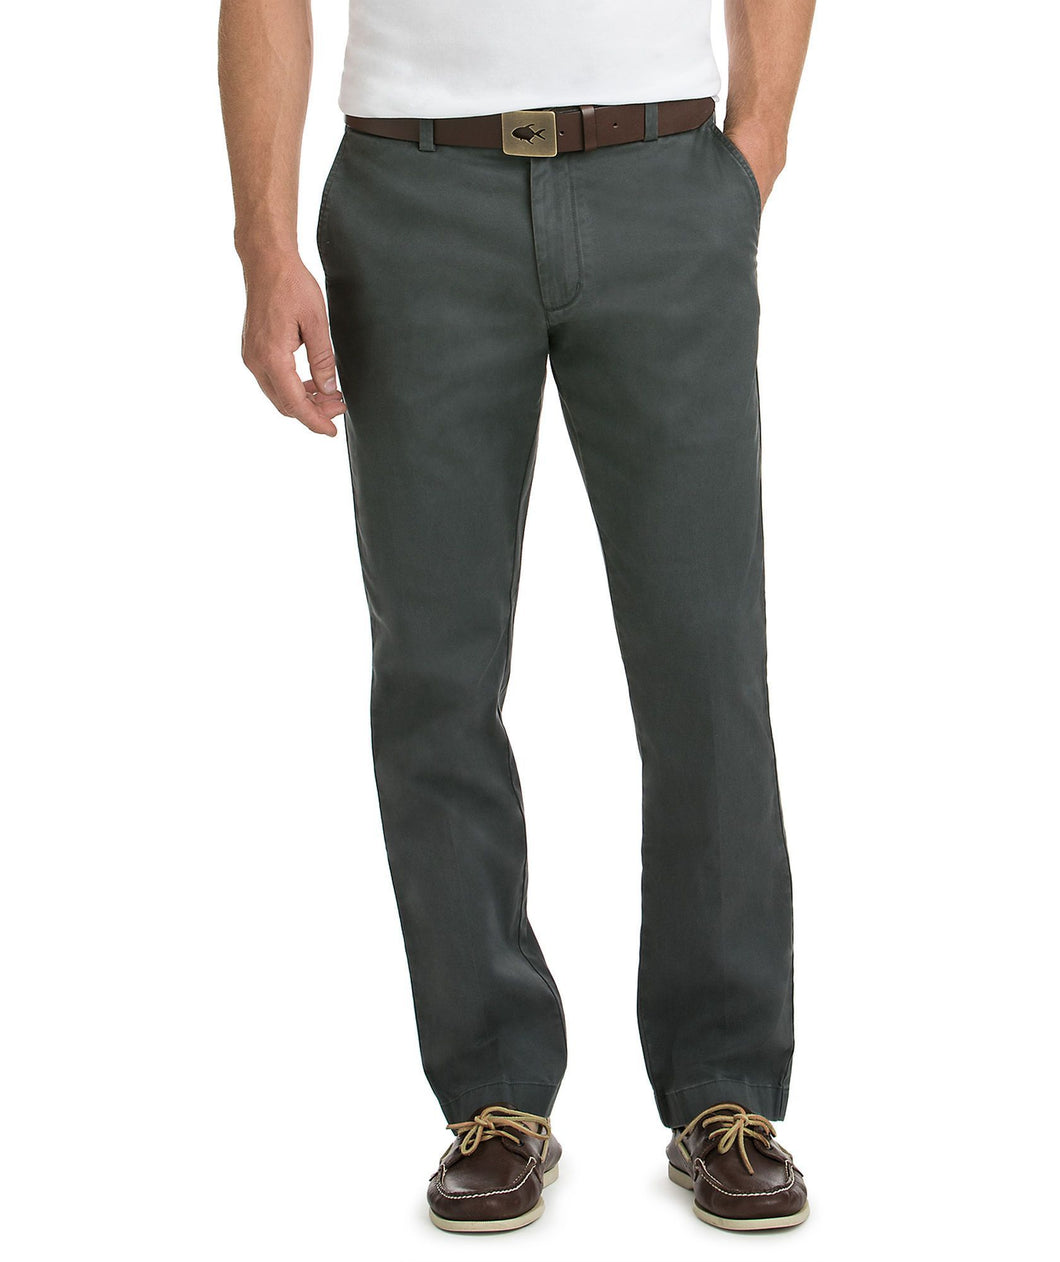 Vineyard Vines MEN - PANTS - DRESS PANTS Vineyard Vines, Stretch Breaker Pants, Nocturne